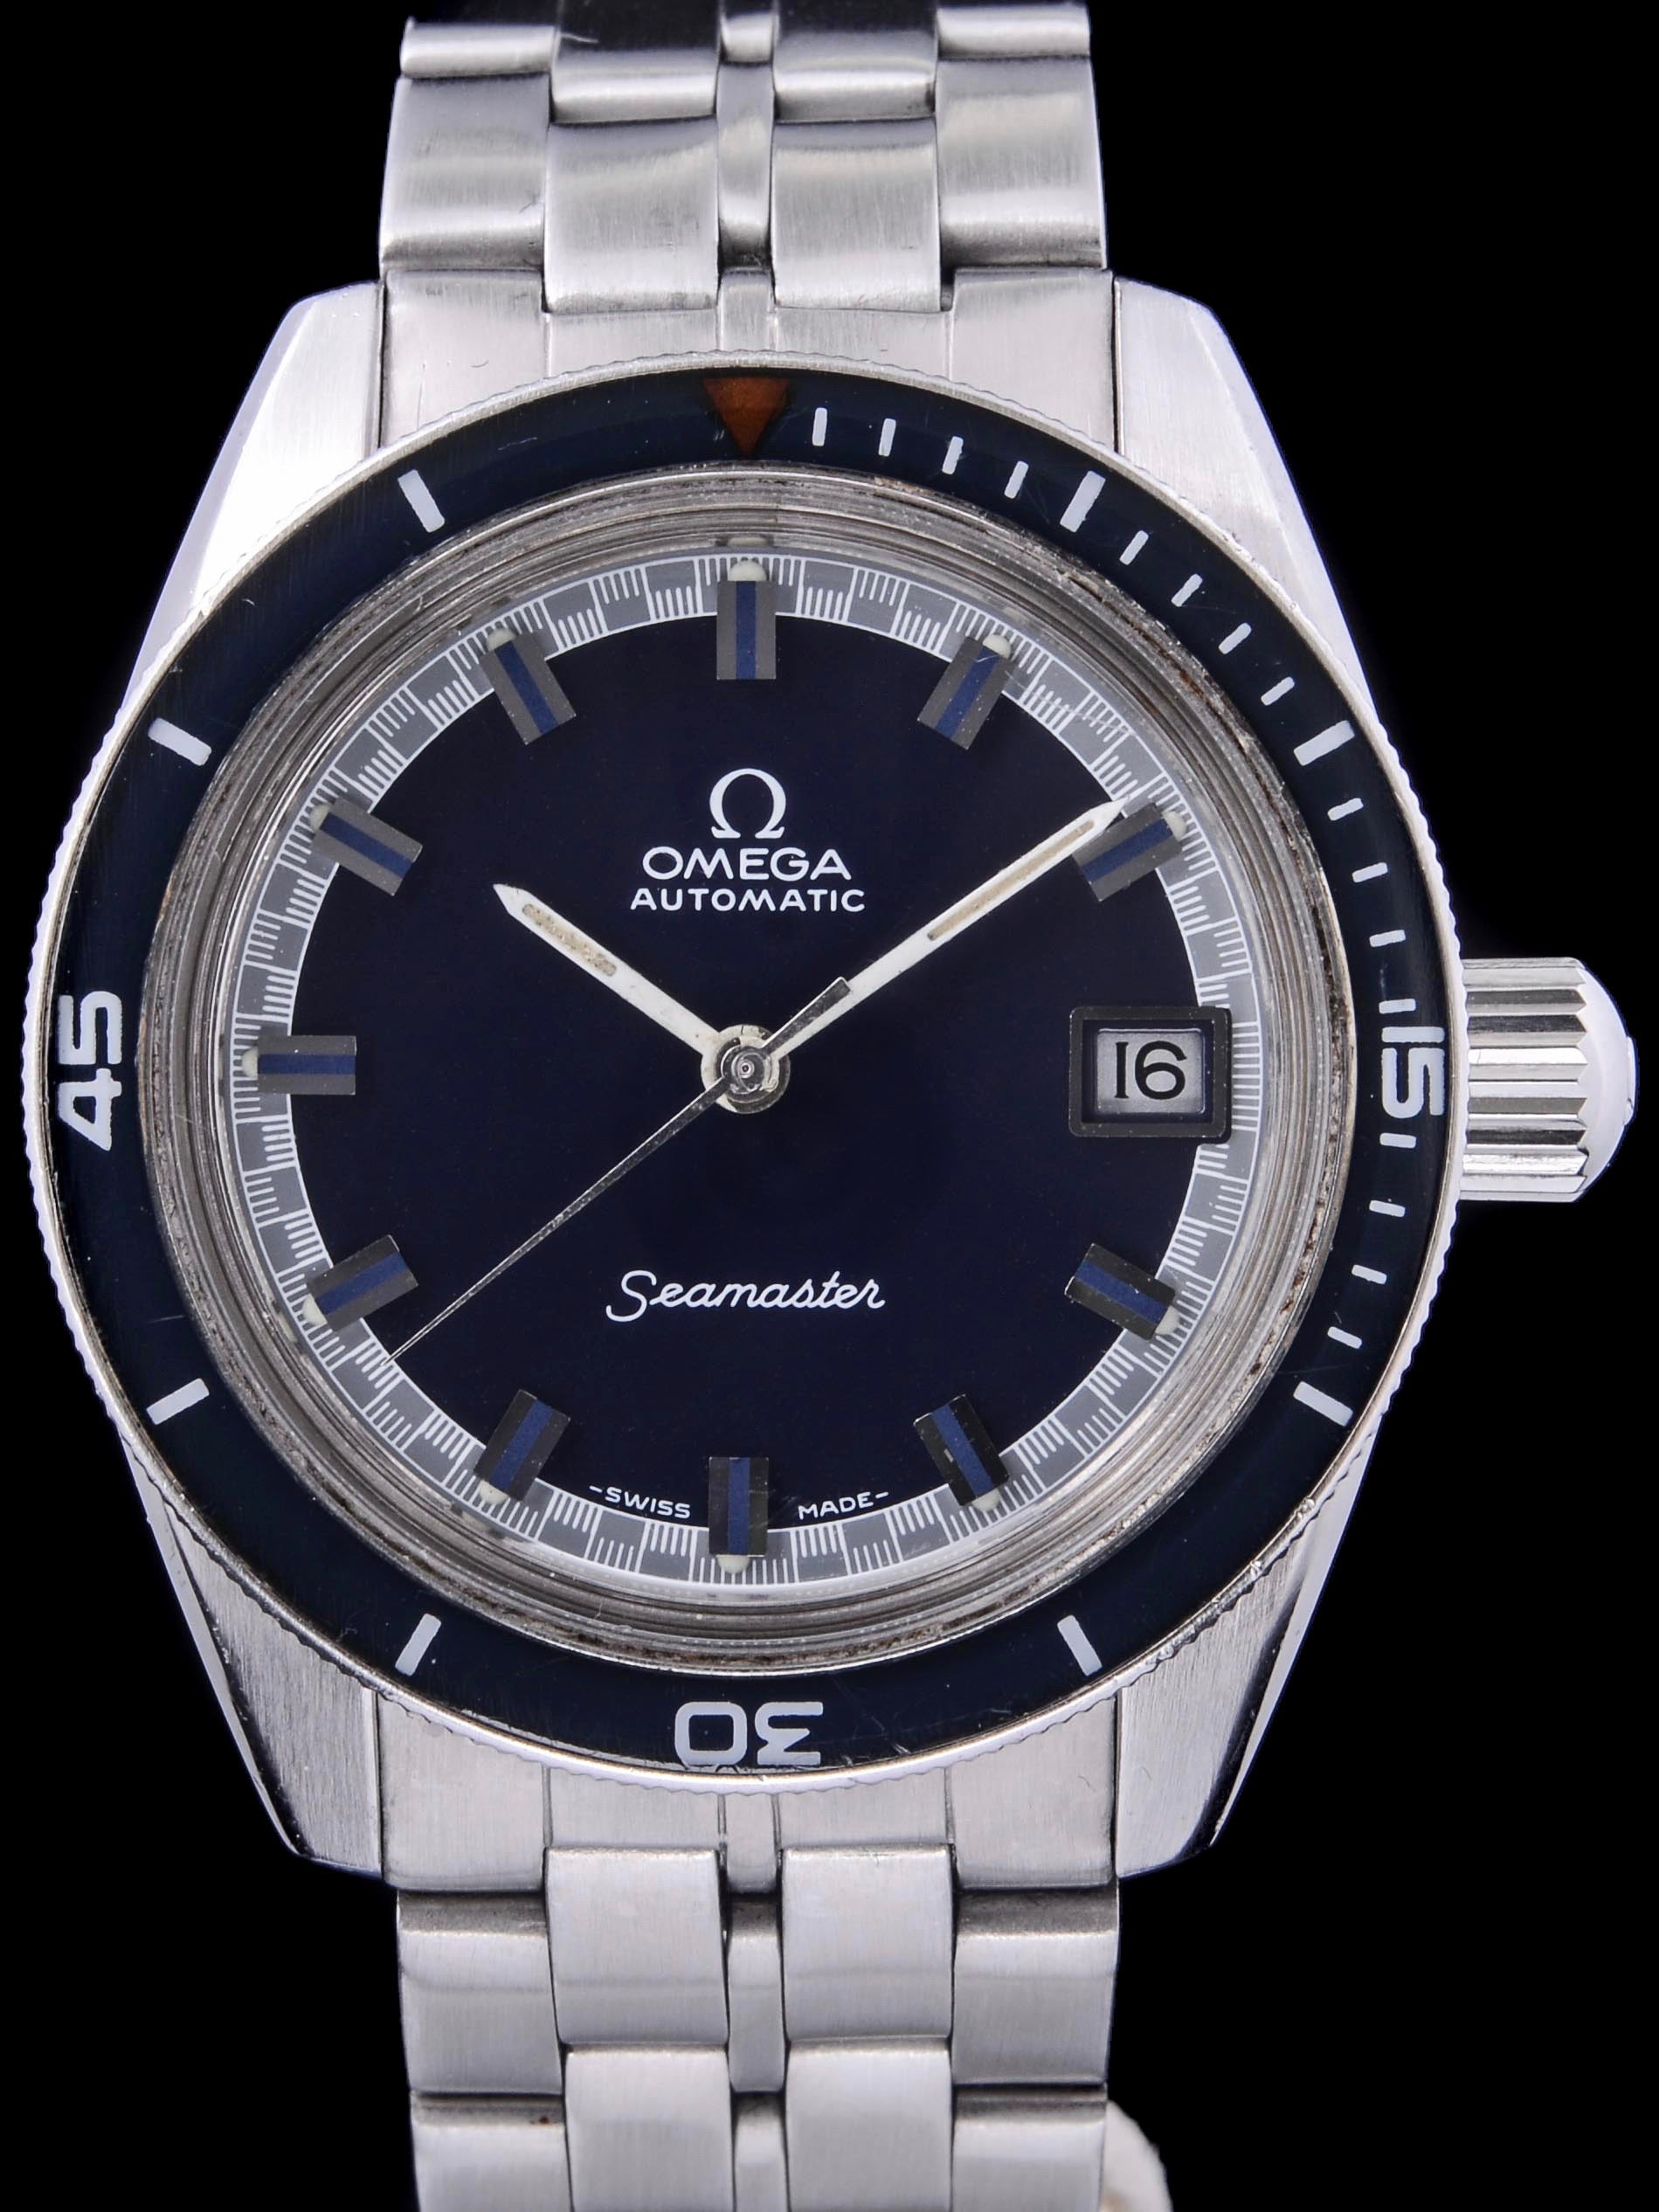 1969 Omega Seamaster 60 Big Crown (166.062)